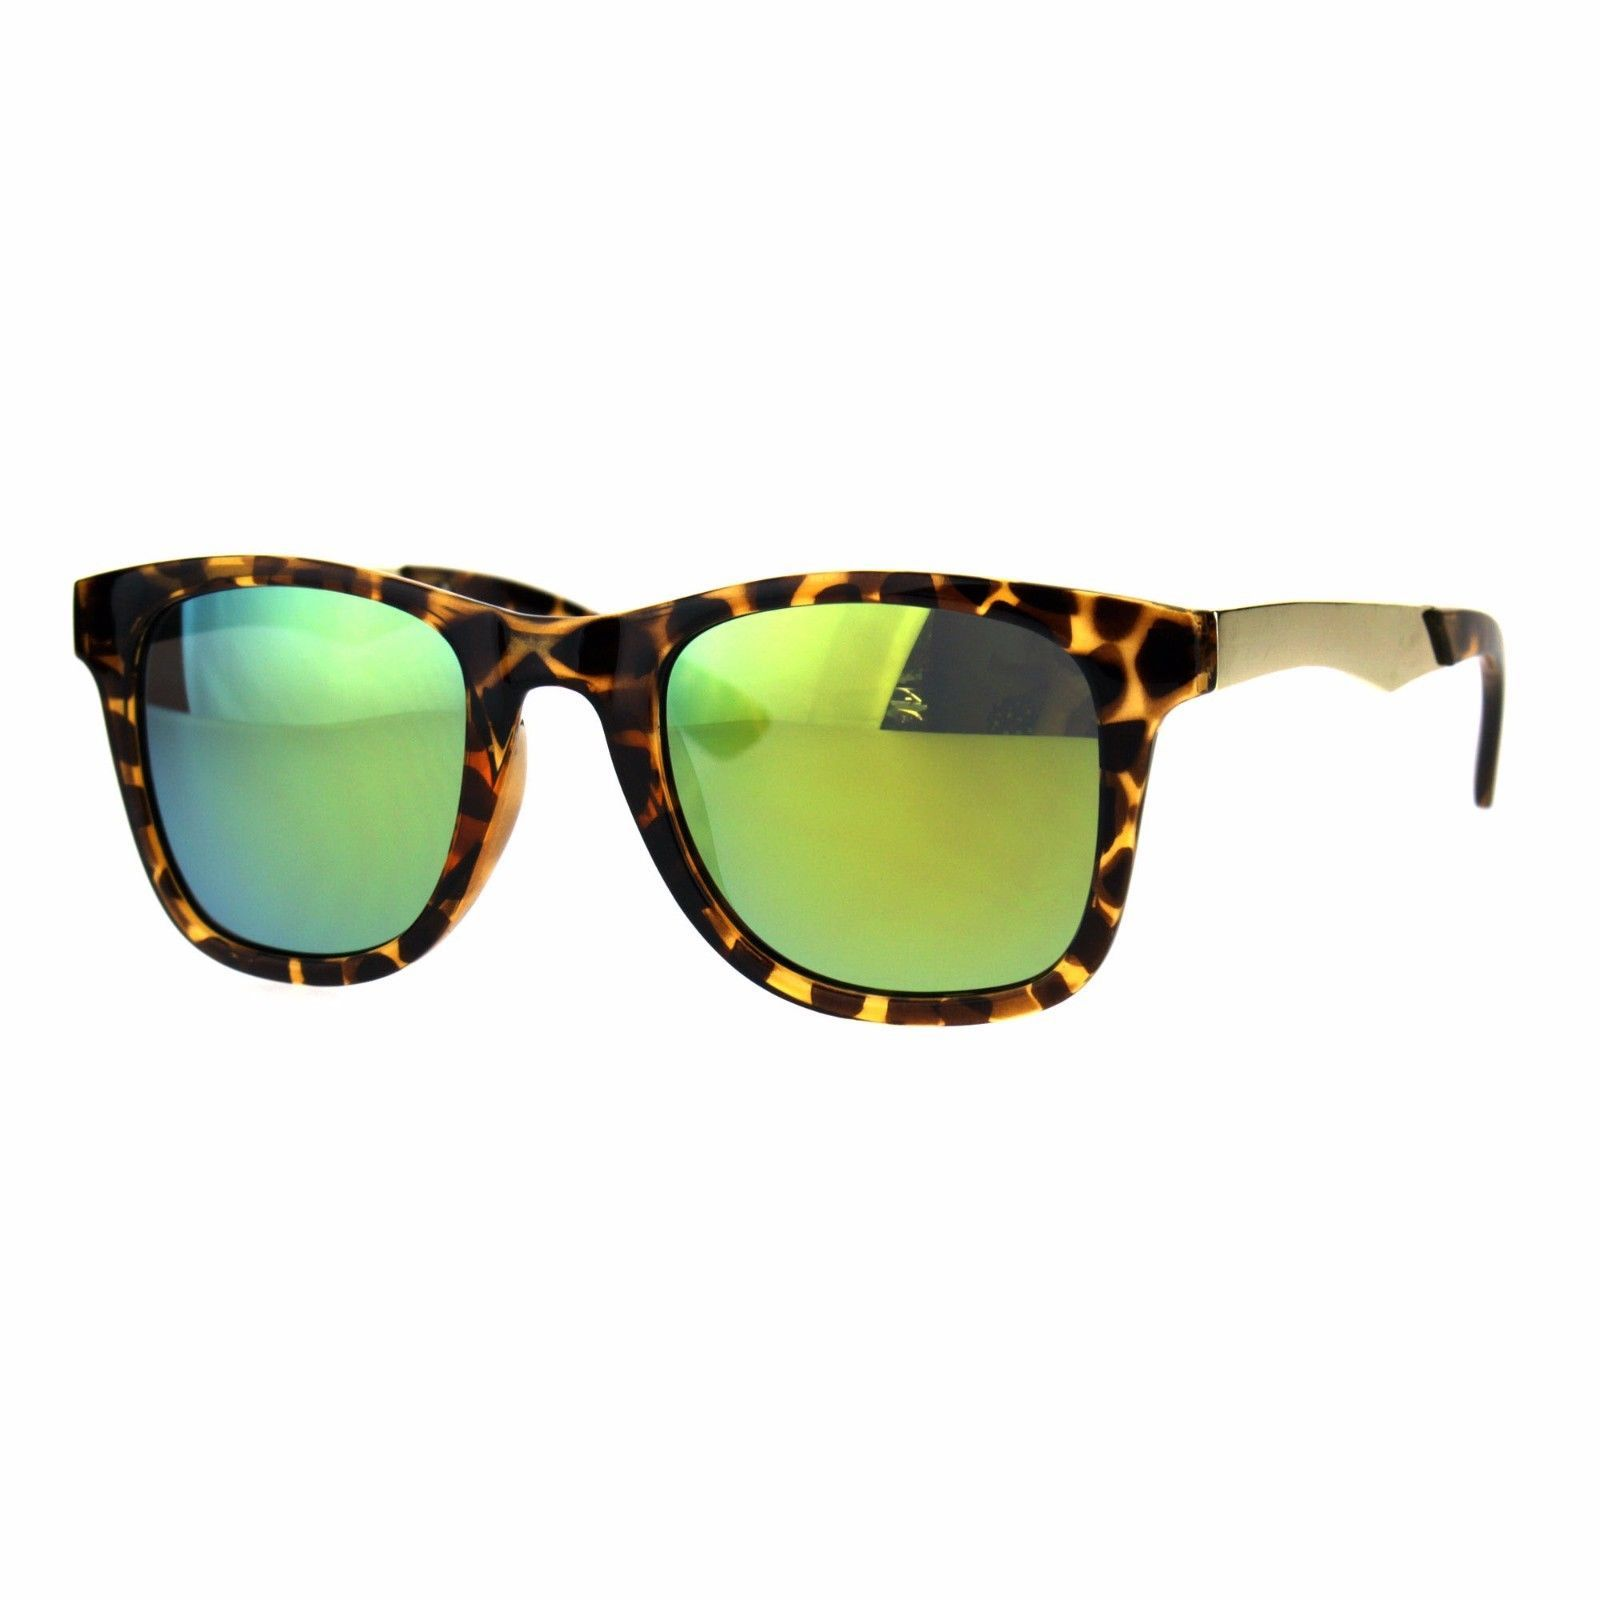 Unisex Fashion Sunglasses Classic Square Frame Metal Temple UV 400